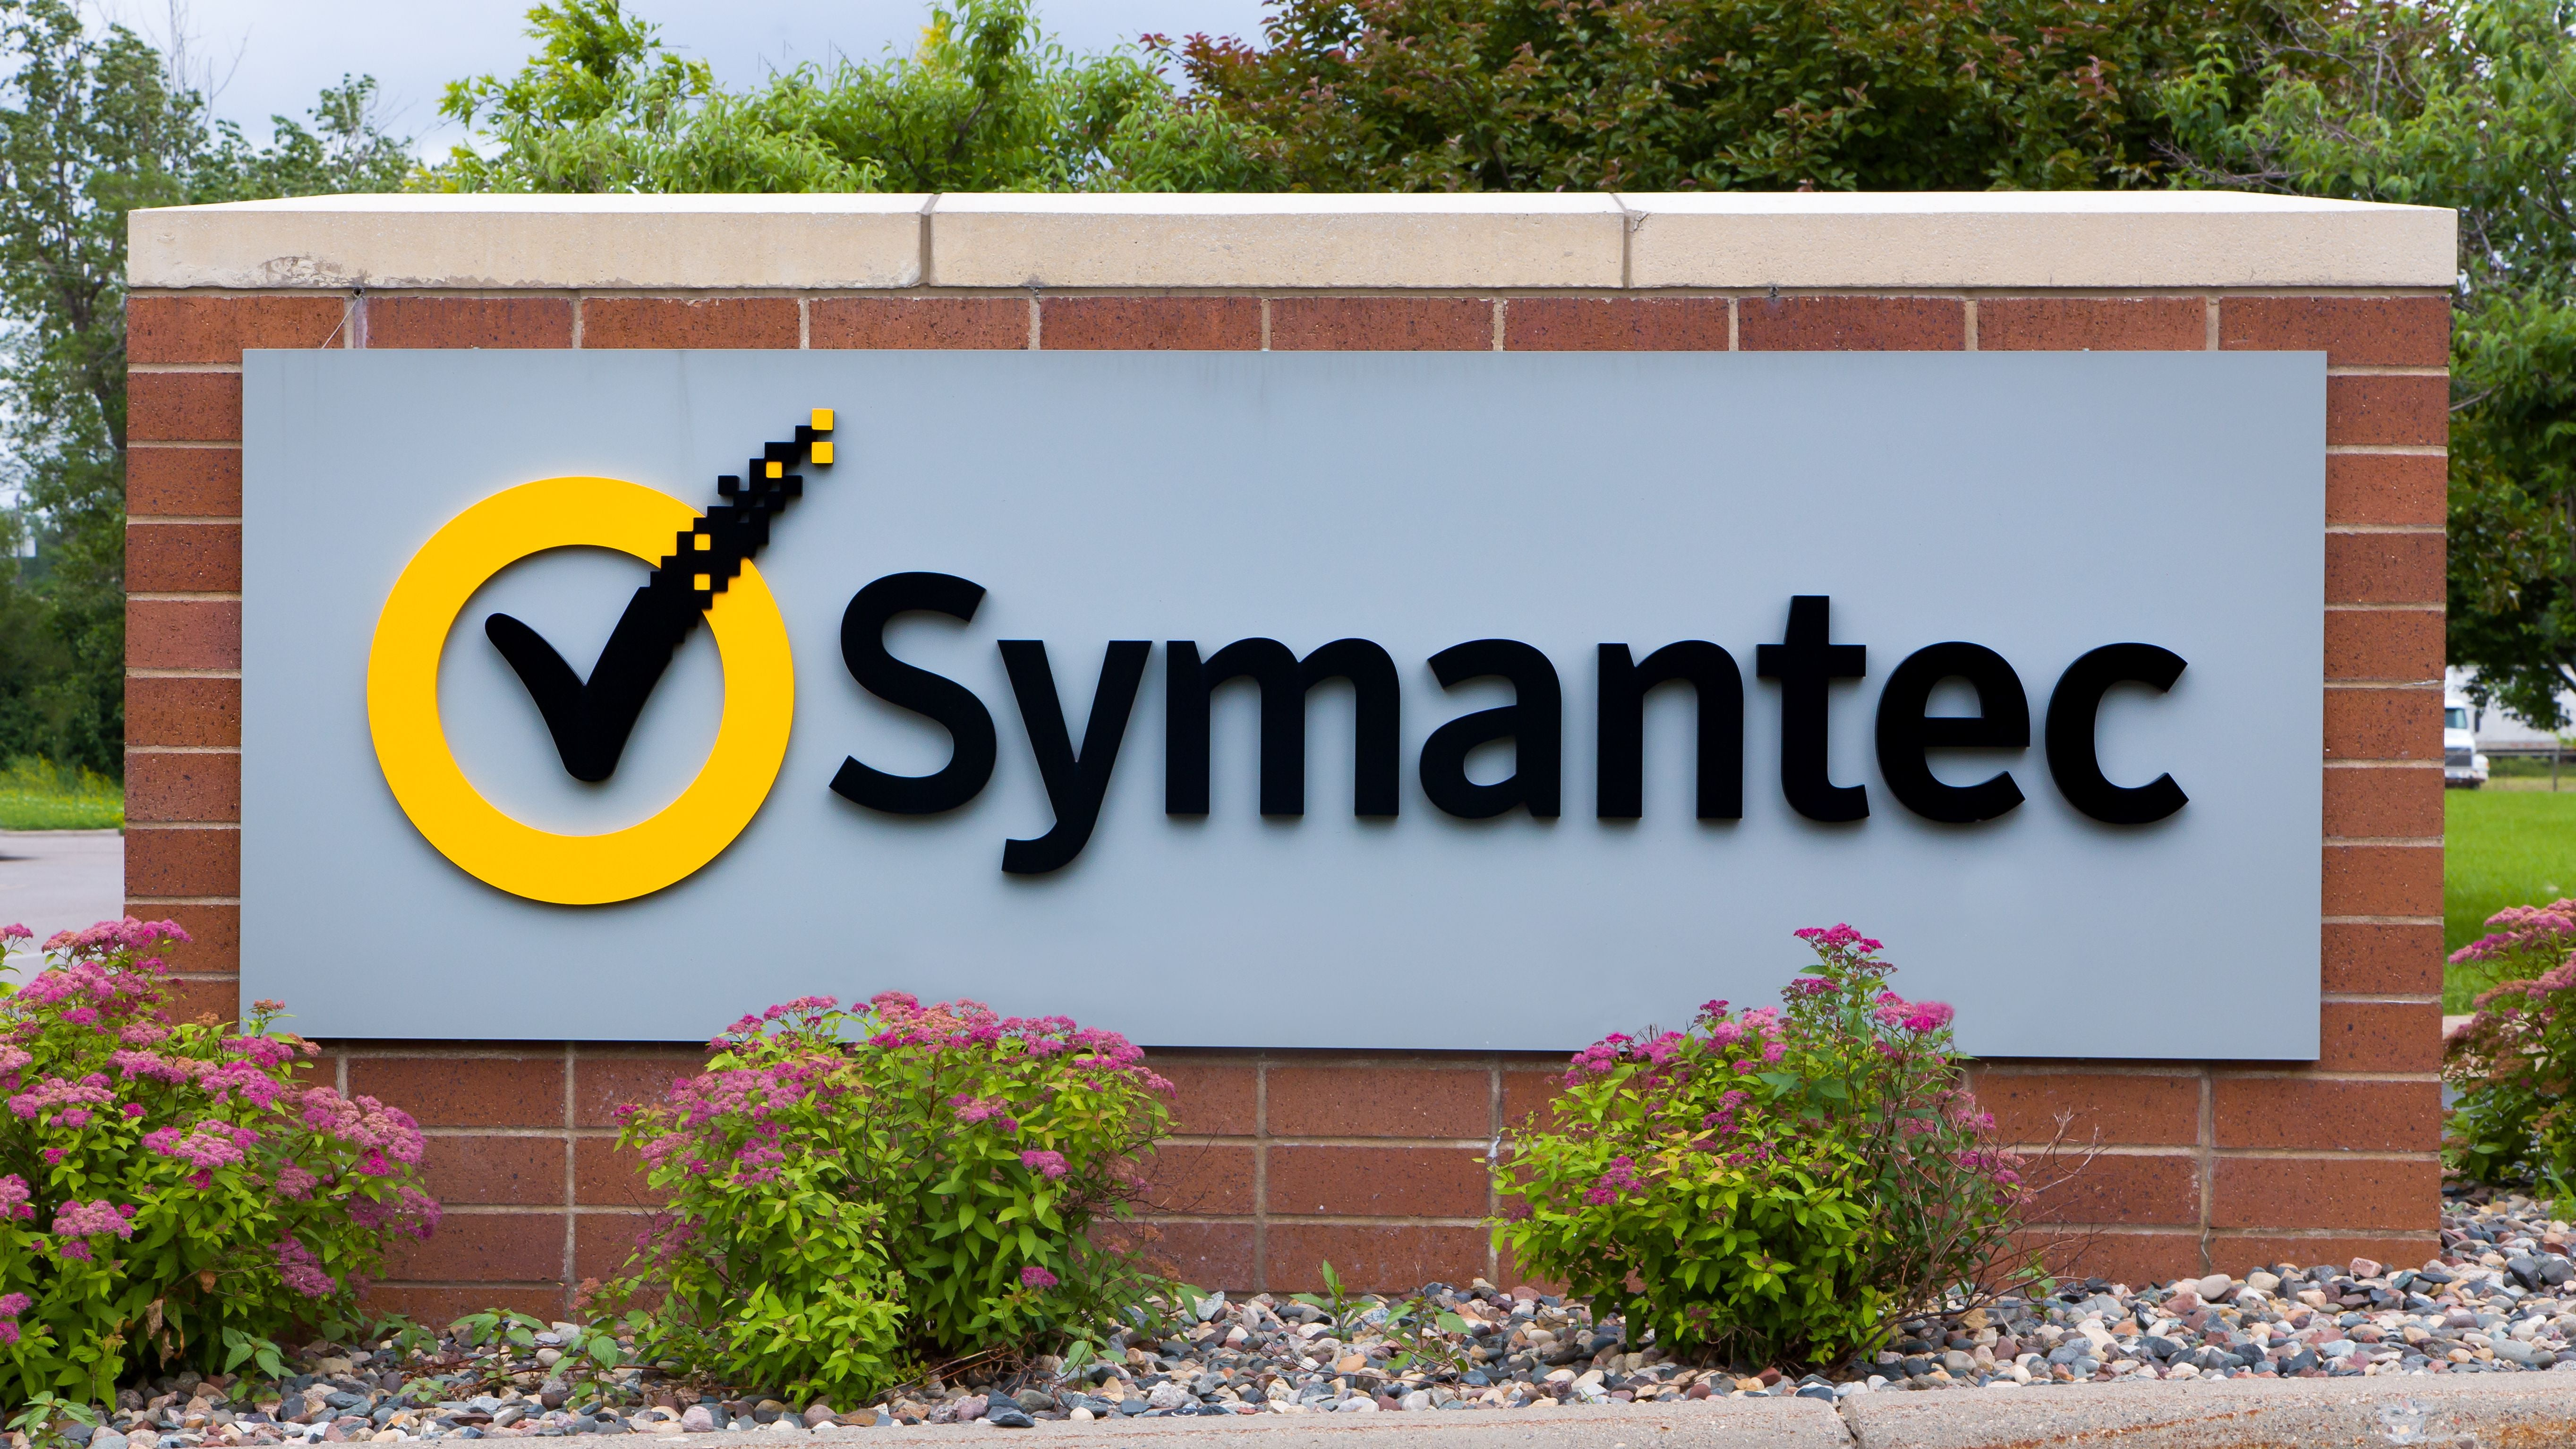 antivirus google google-project-zero norton security symantec